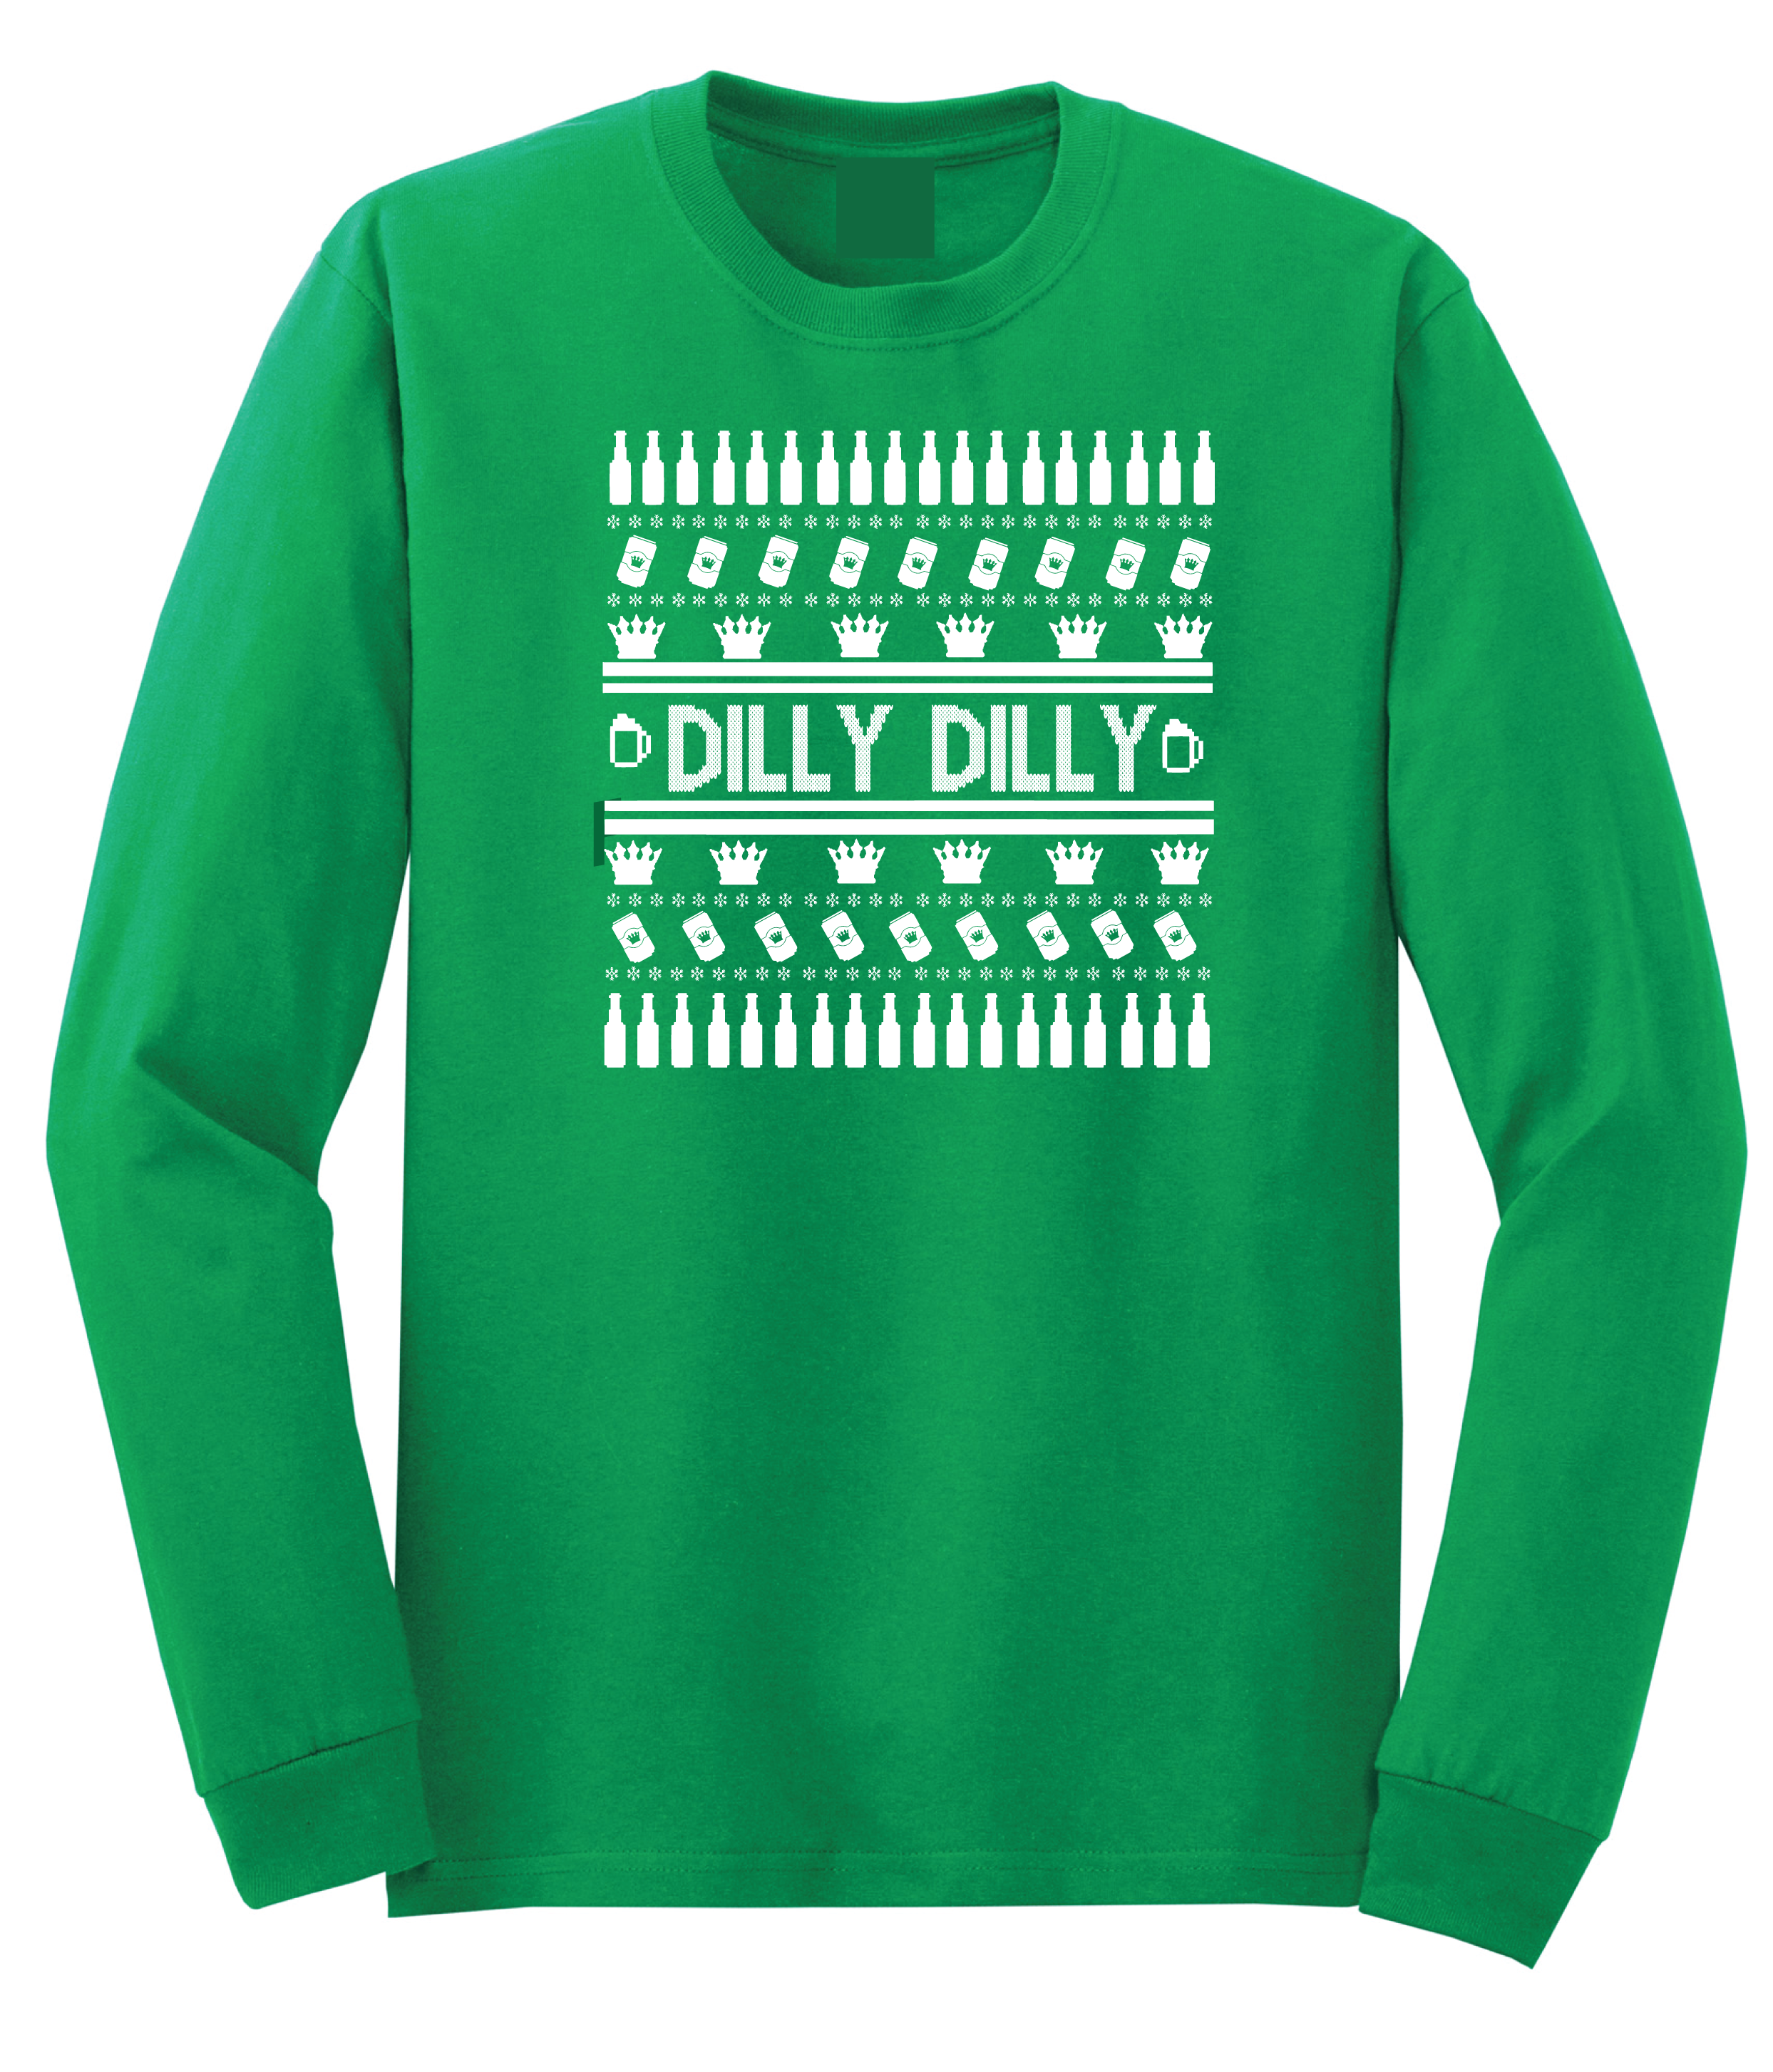 dilly dilly ugly christmas sweater green long sleeved